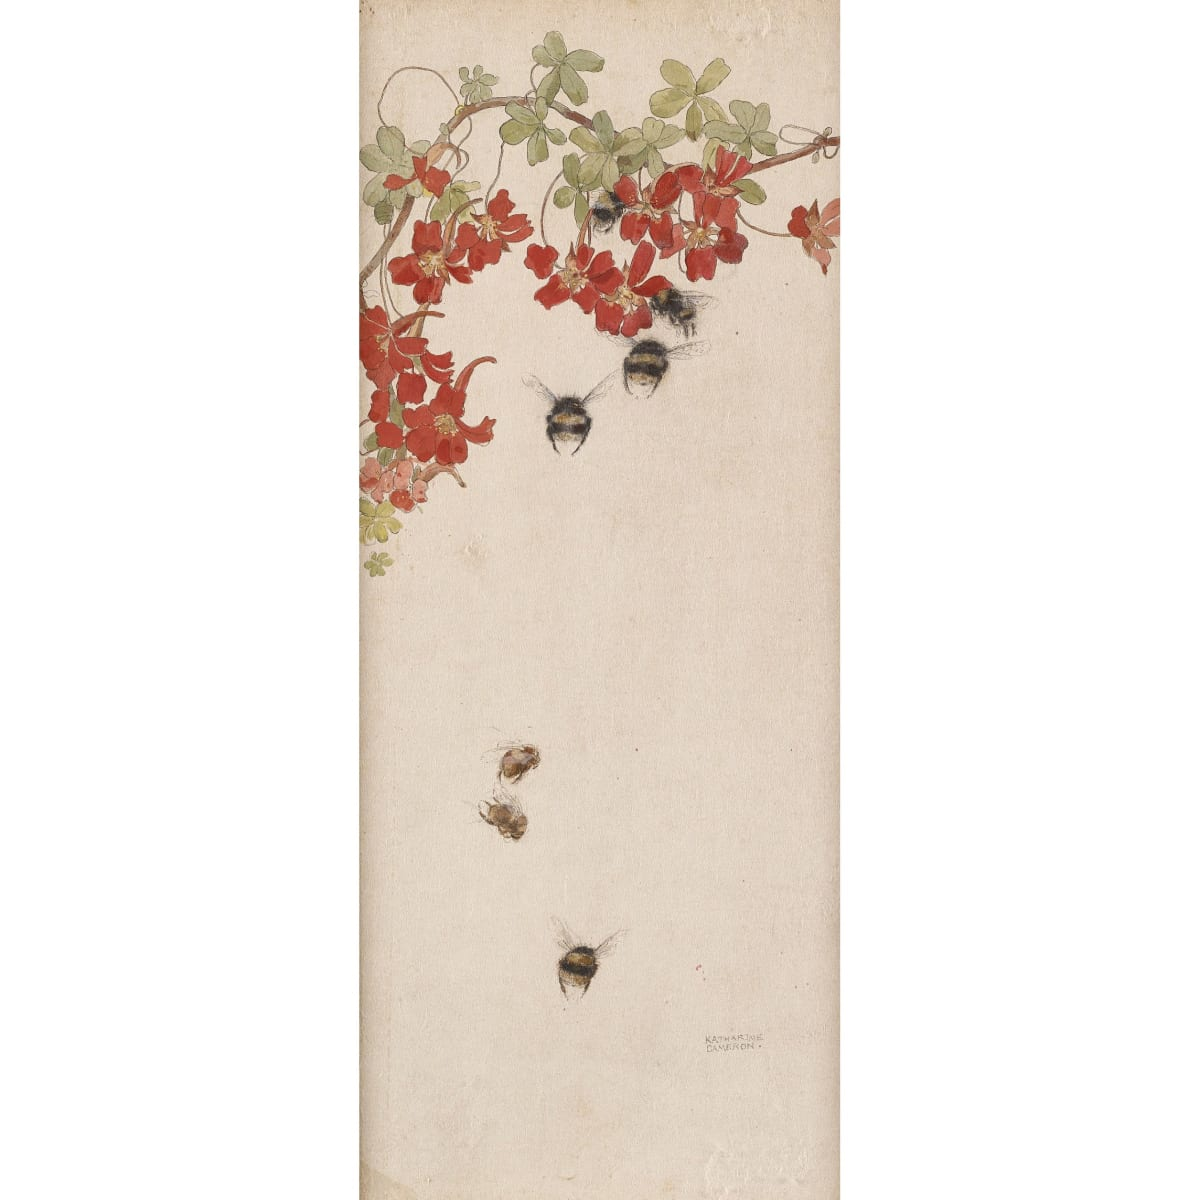 Katharine Cameron Bees and Flowers signed watercolour on paper 26 x 14 1/4 inches